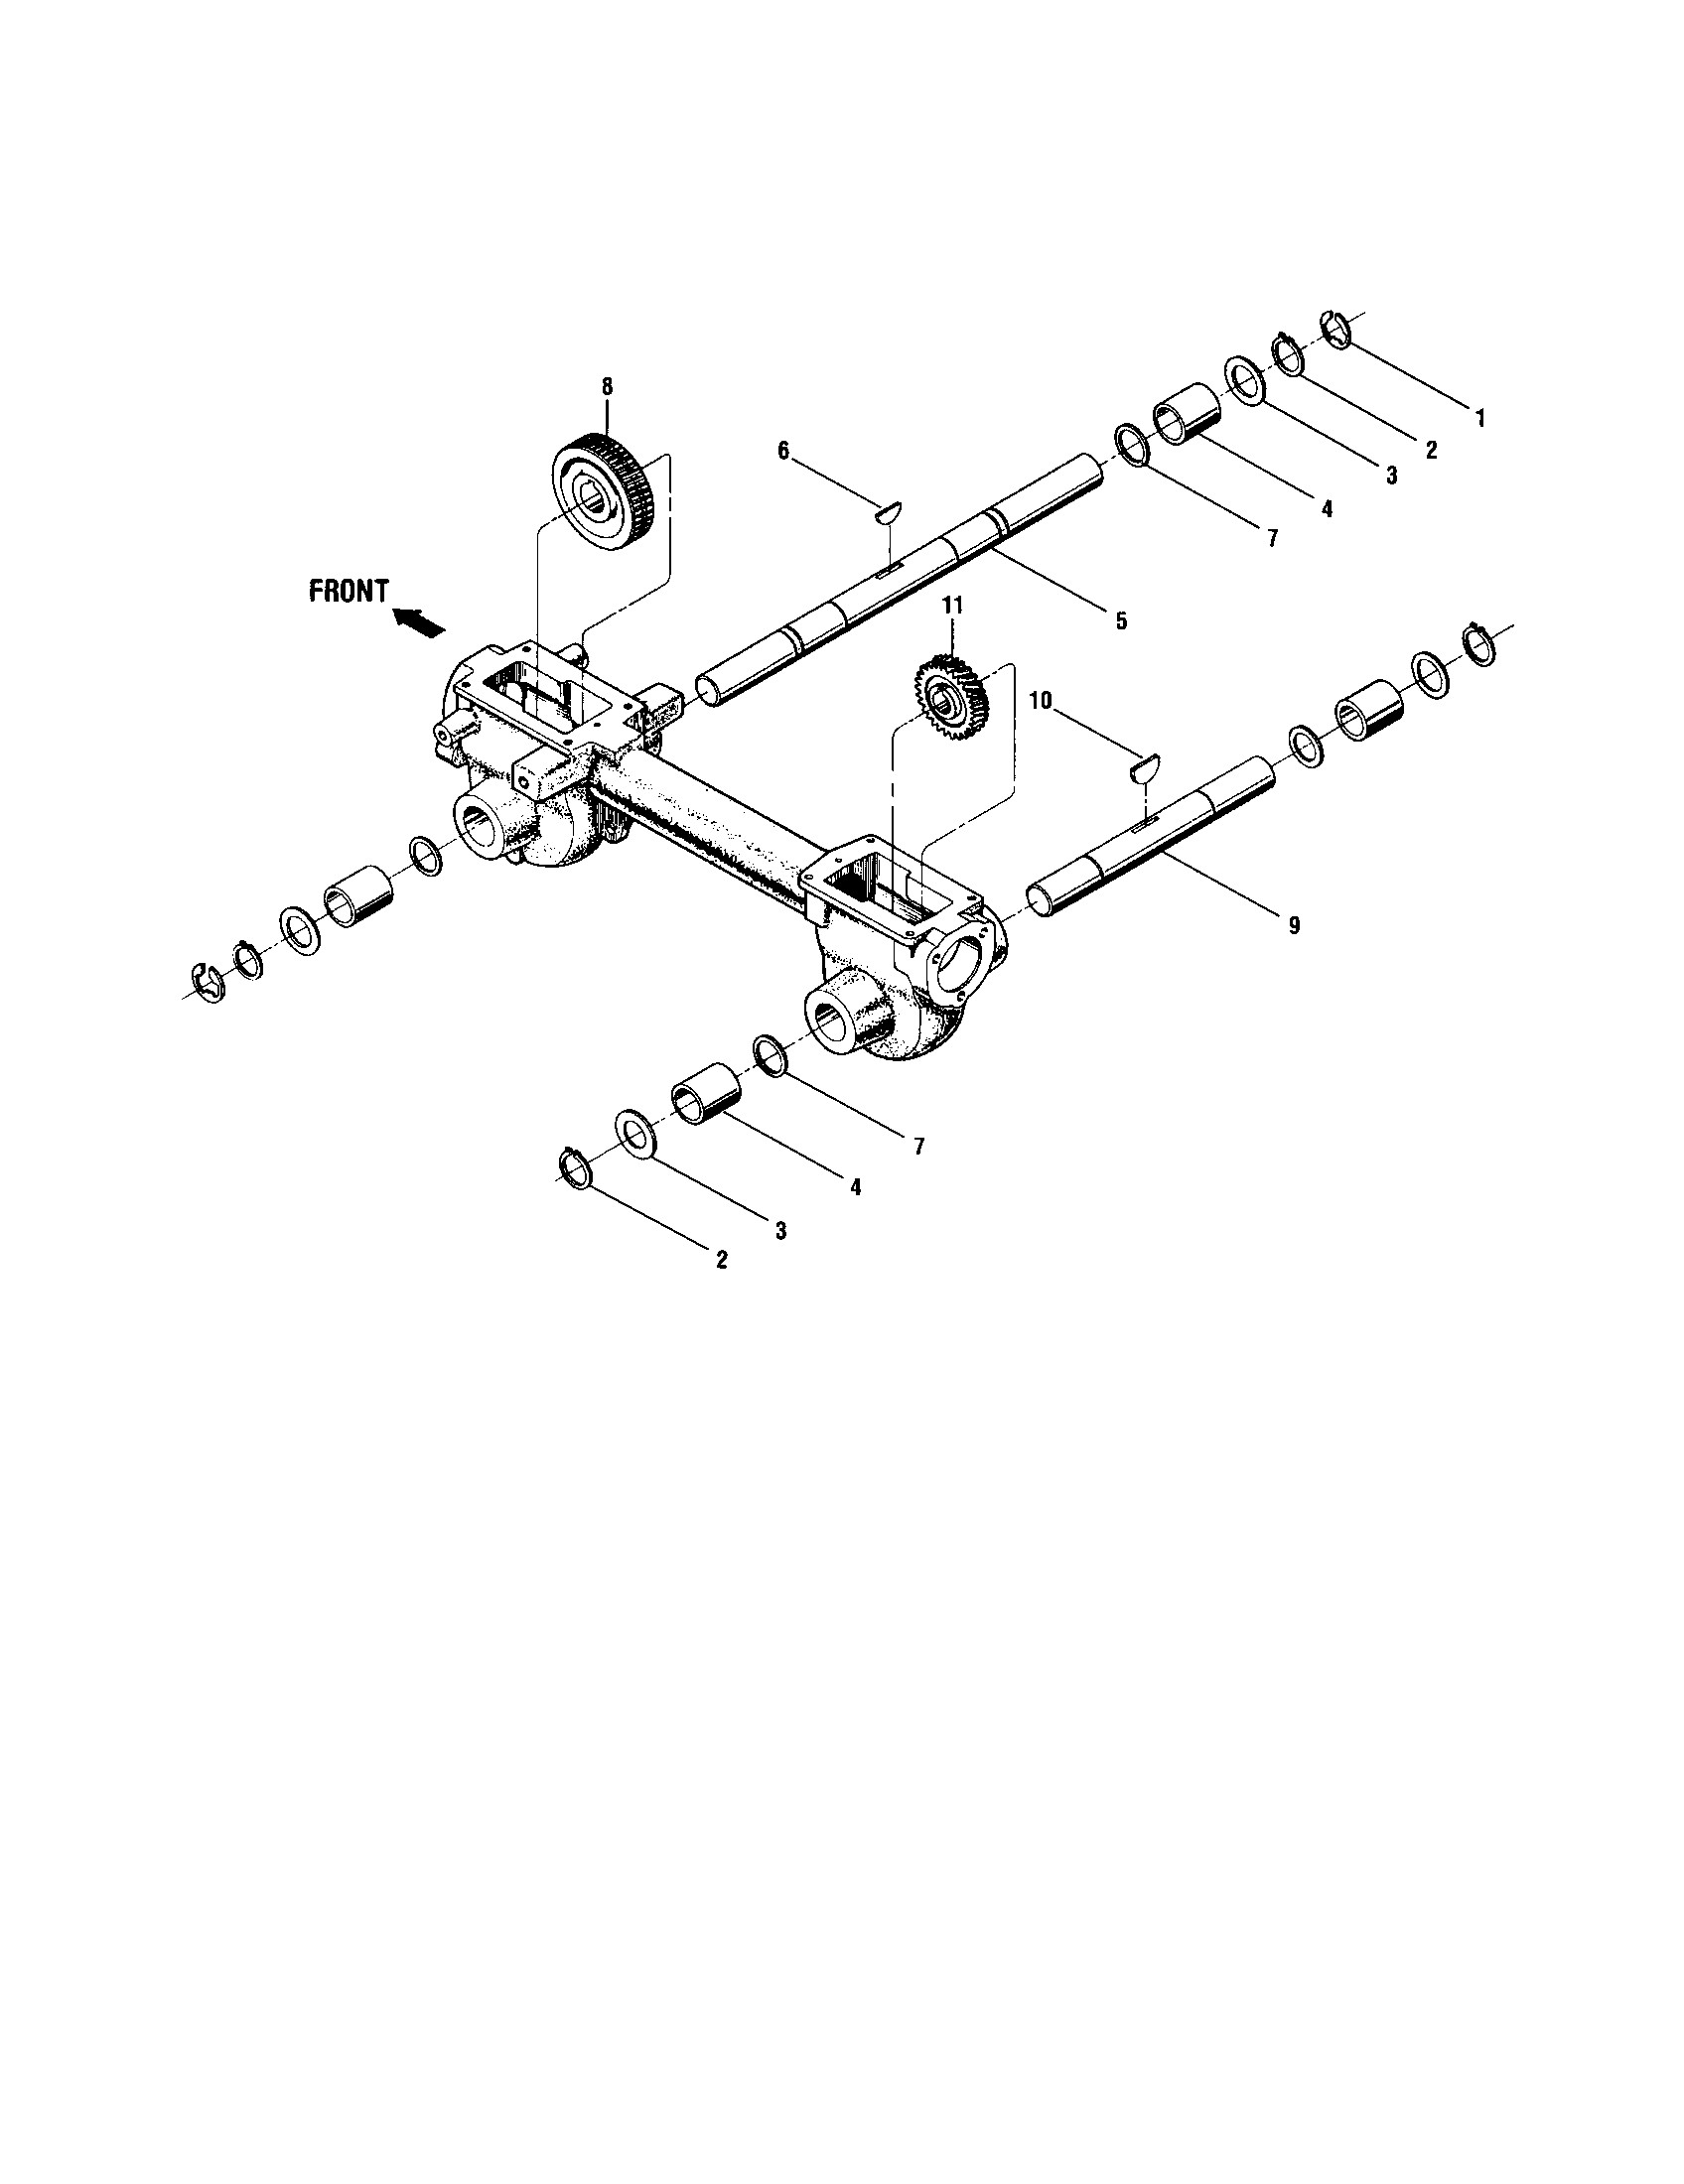 Craftsman Tiller Parts Diagram Troybilt Tiller Parts Model 634f Of Craftsman Tiller Parts Diagram